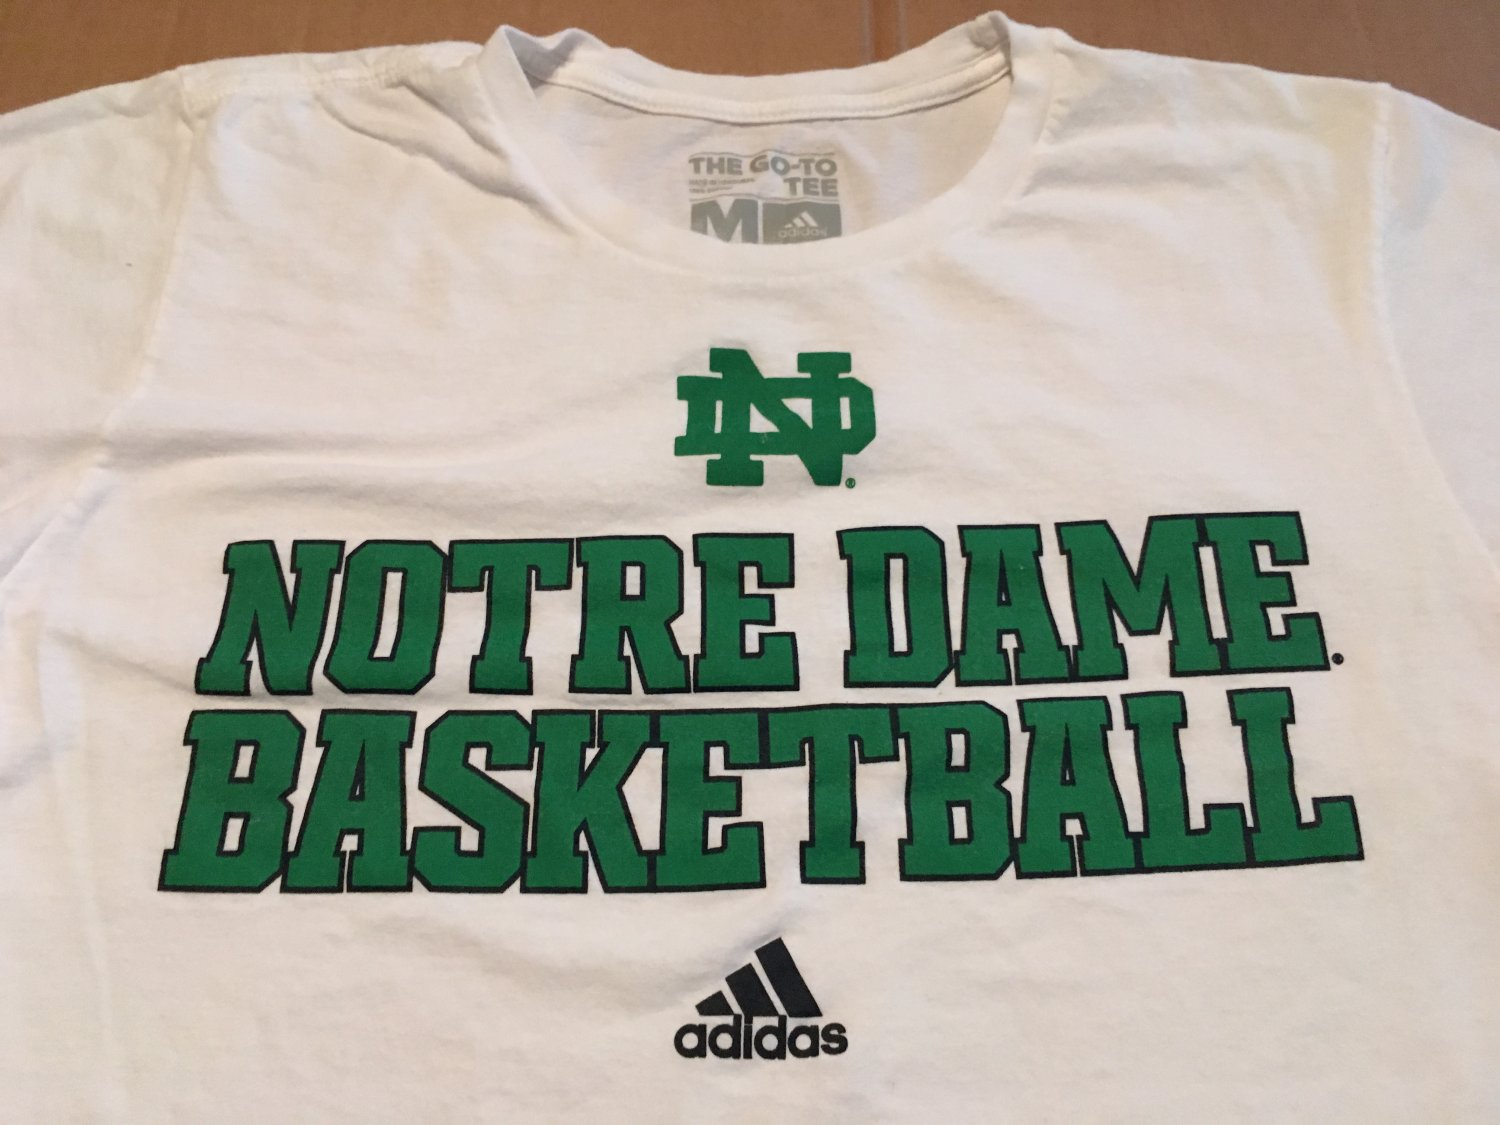 Adidas Notre Dame Basketball Graphic Tee White Green Font Men's Size Medium